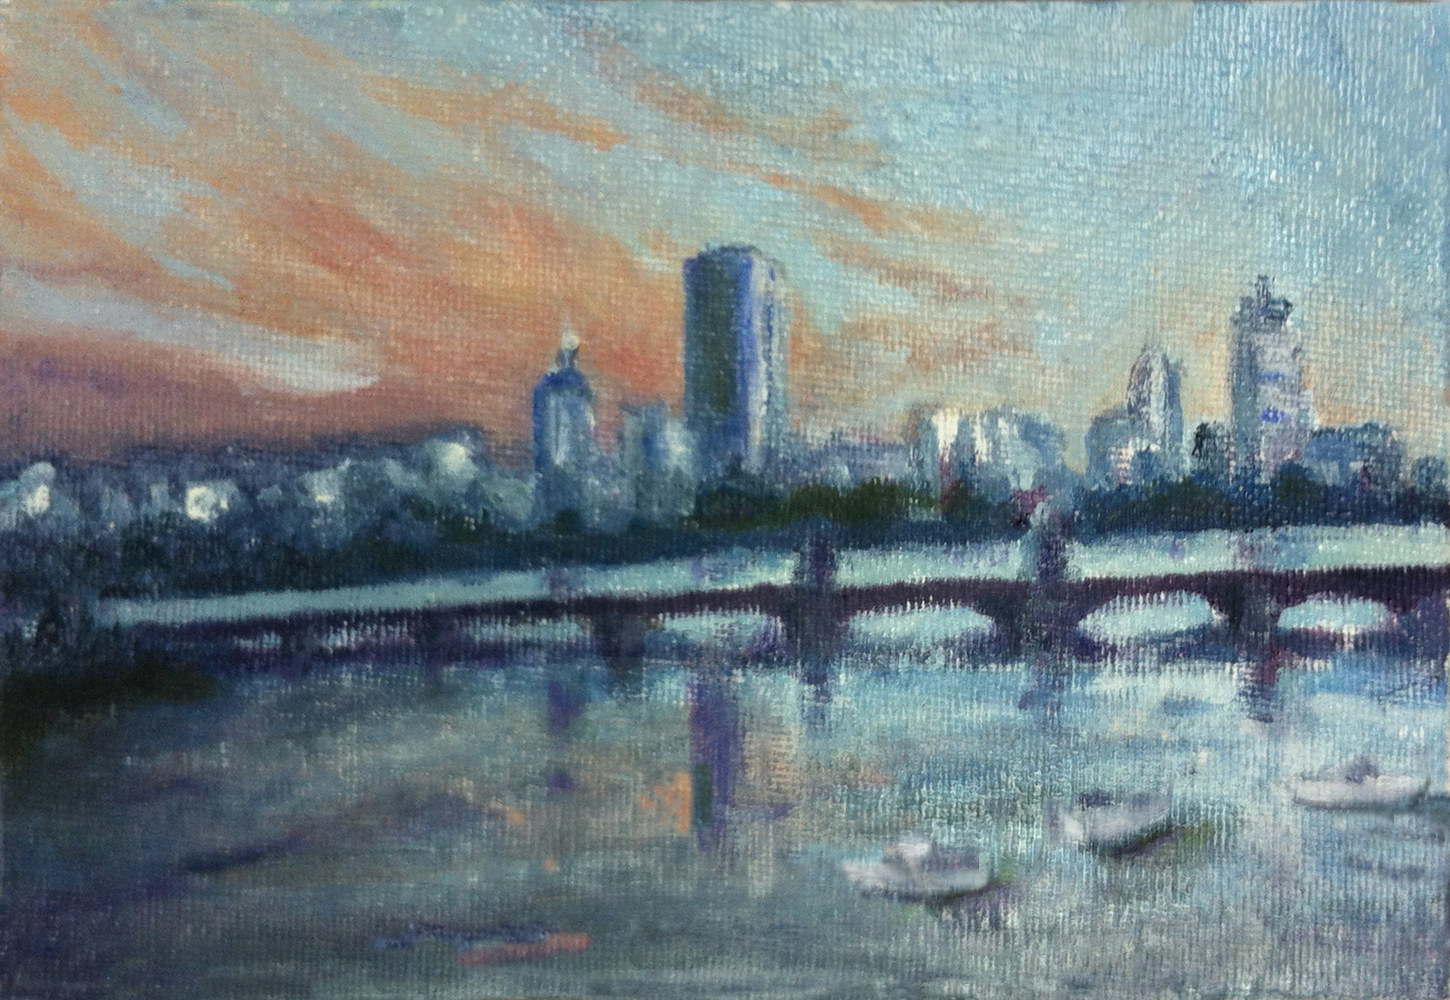 Oil painting View of Boston at Dusk by Anastasia O'melveny